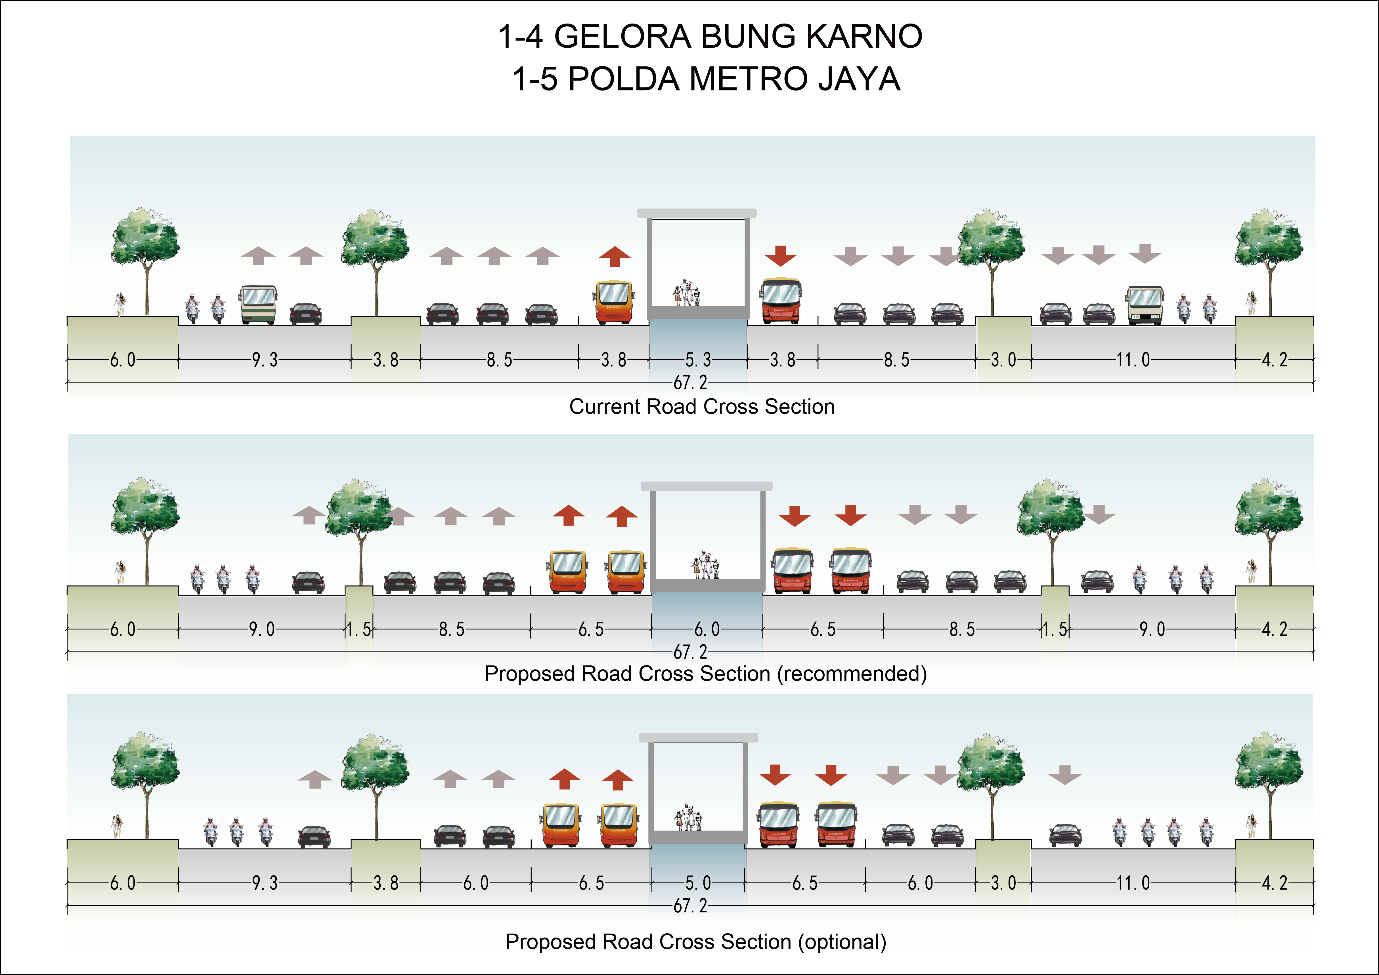 Fig. 21.1 Conceptual layout and cross section of a median BRT in Jakarta, Indonesia, to illustrate the insertion of dedicated infrastructure within a corridor.